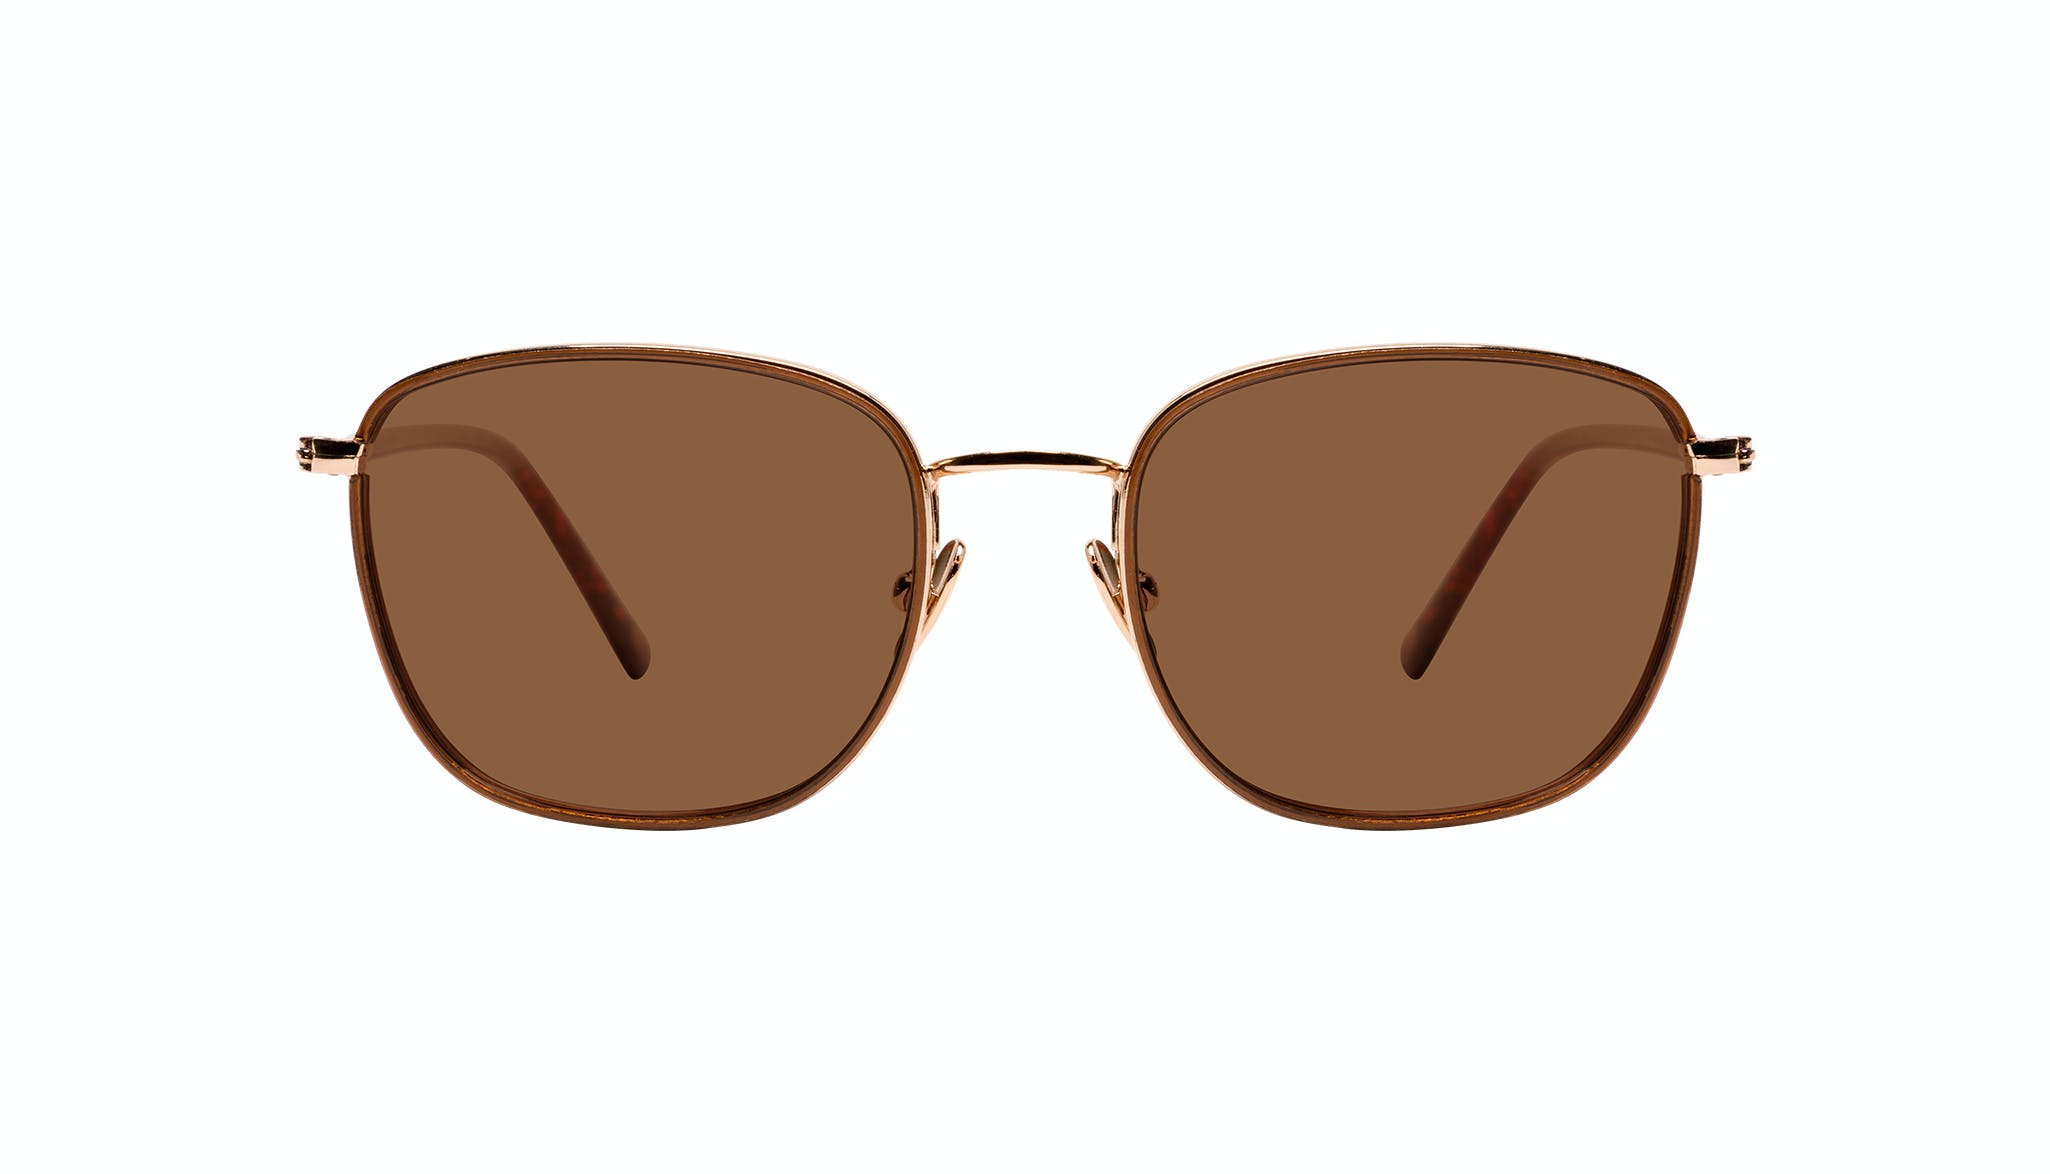 Affordable Fashion Glasses Rectangle Sunglasses Women Lawrence Santal